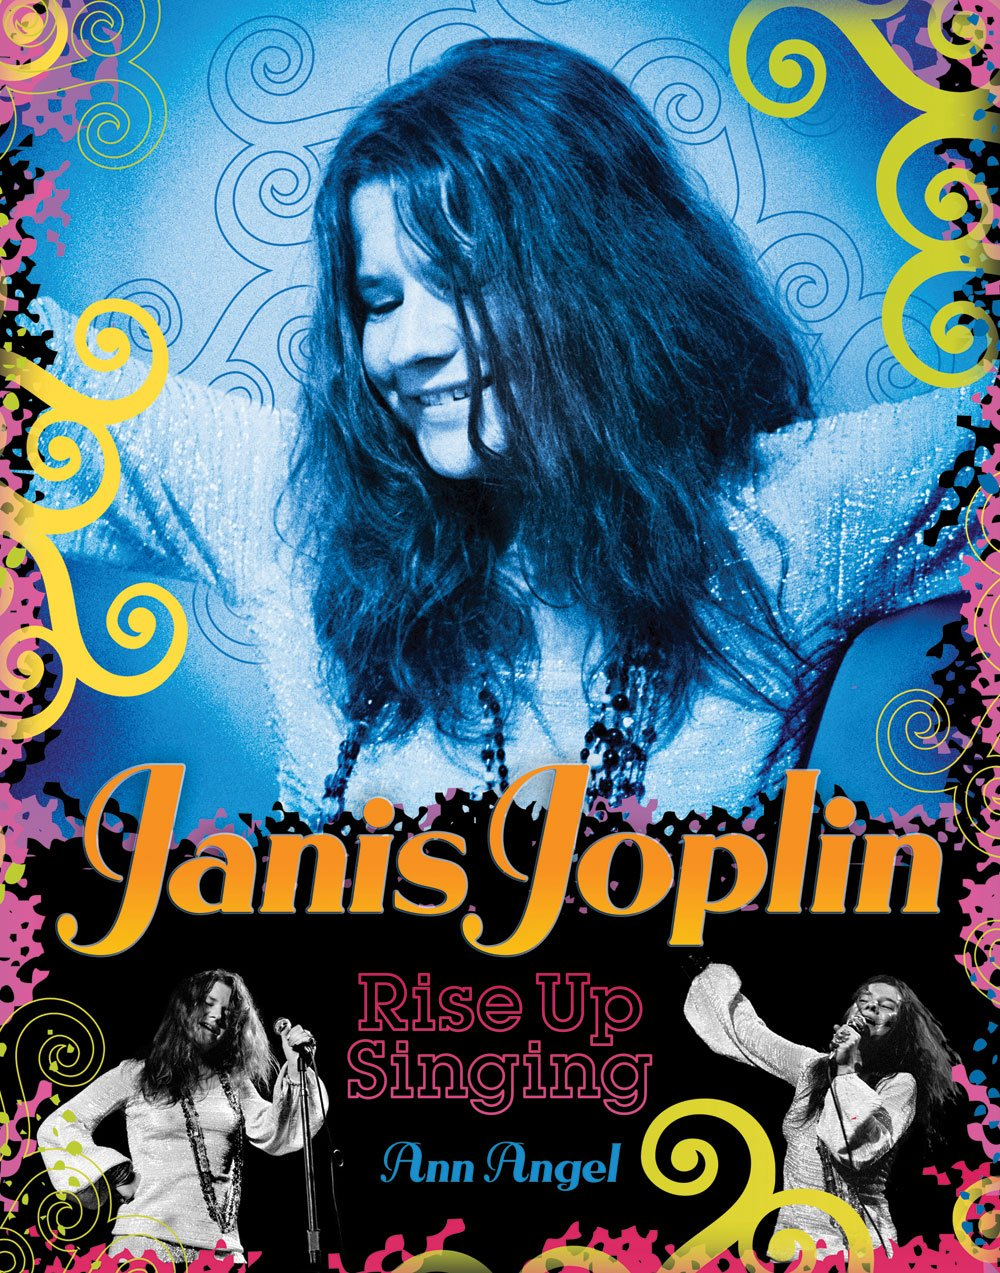 Amazon.com: Janis Joplin: Rise Up Singing (9780810983496): Ann Angel: Books